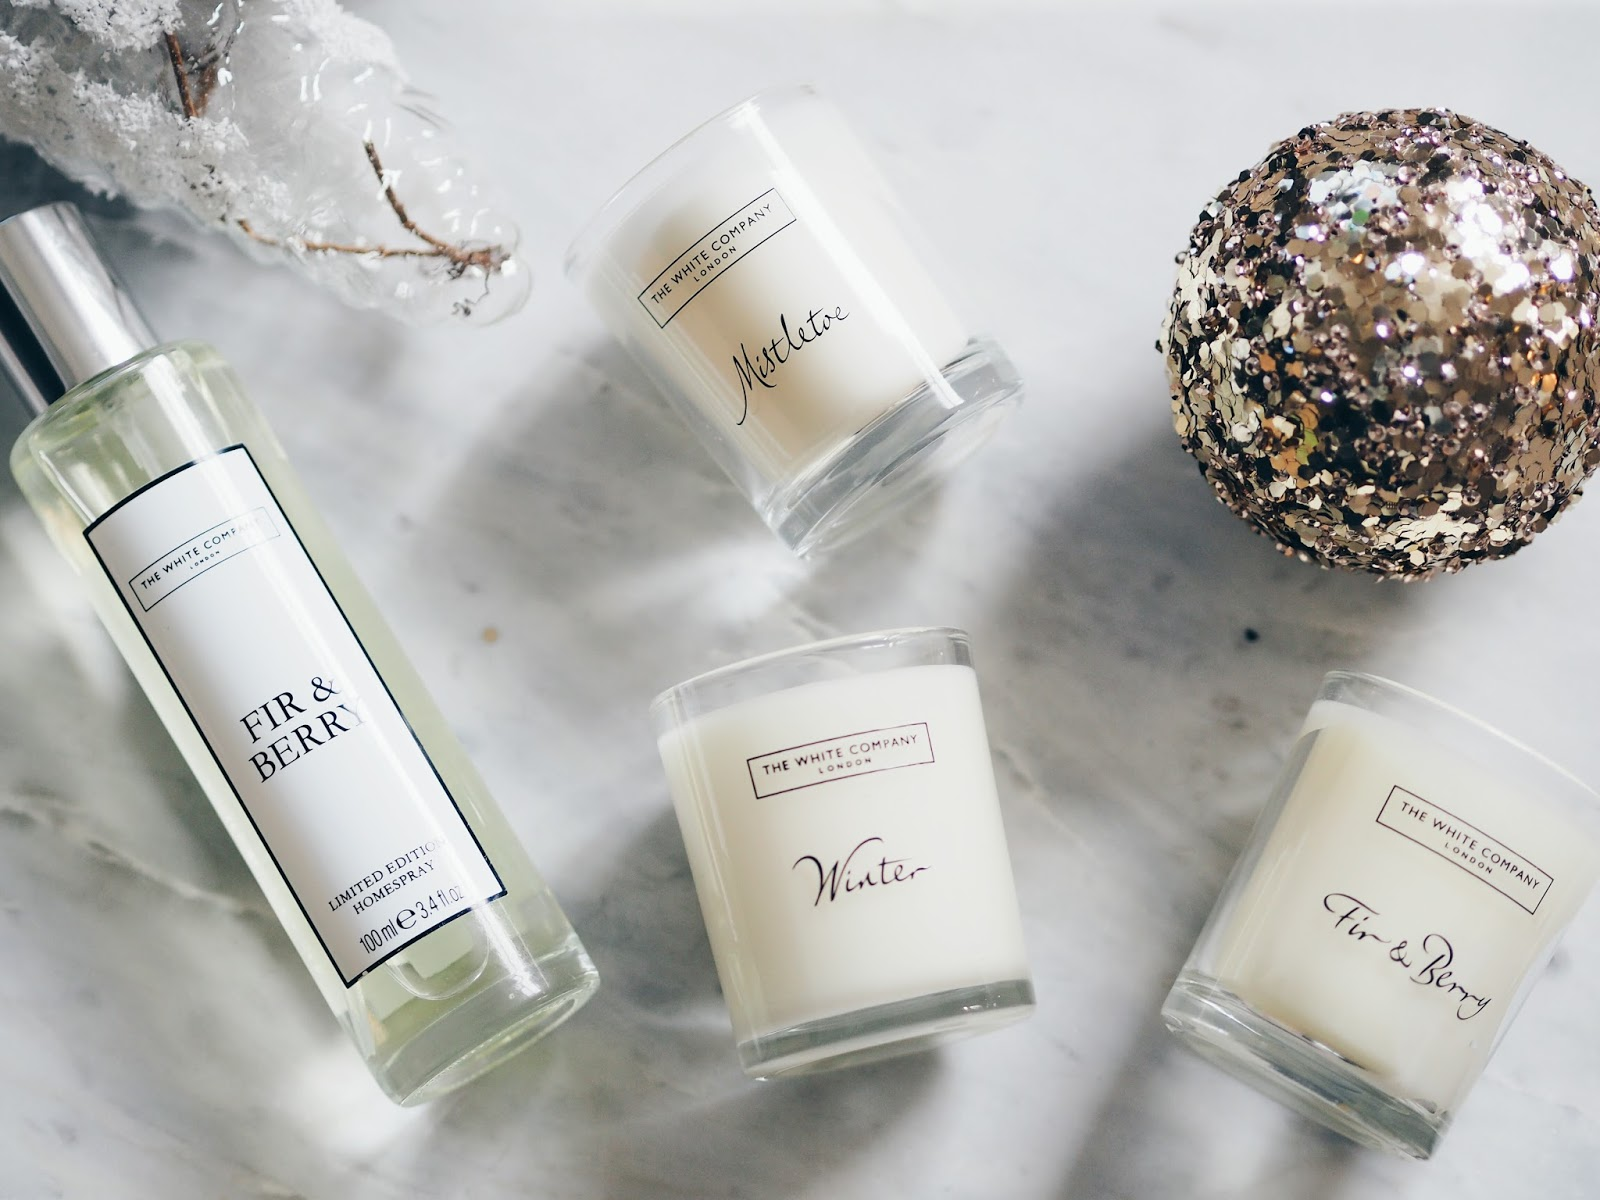 The White Company Winter Candle Fir and Berry Room Spray Home Fragrance